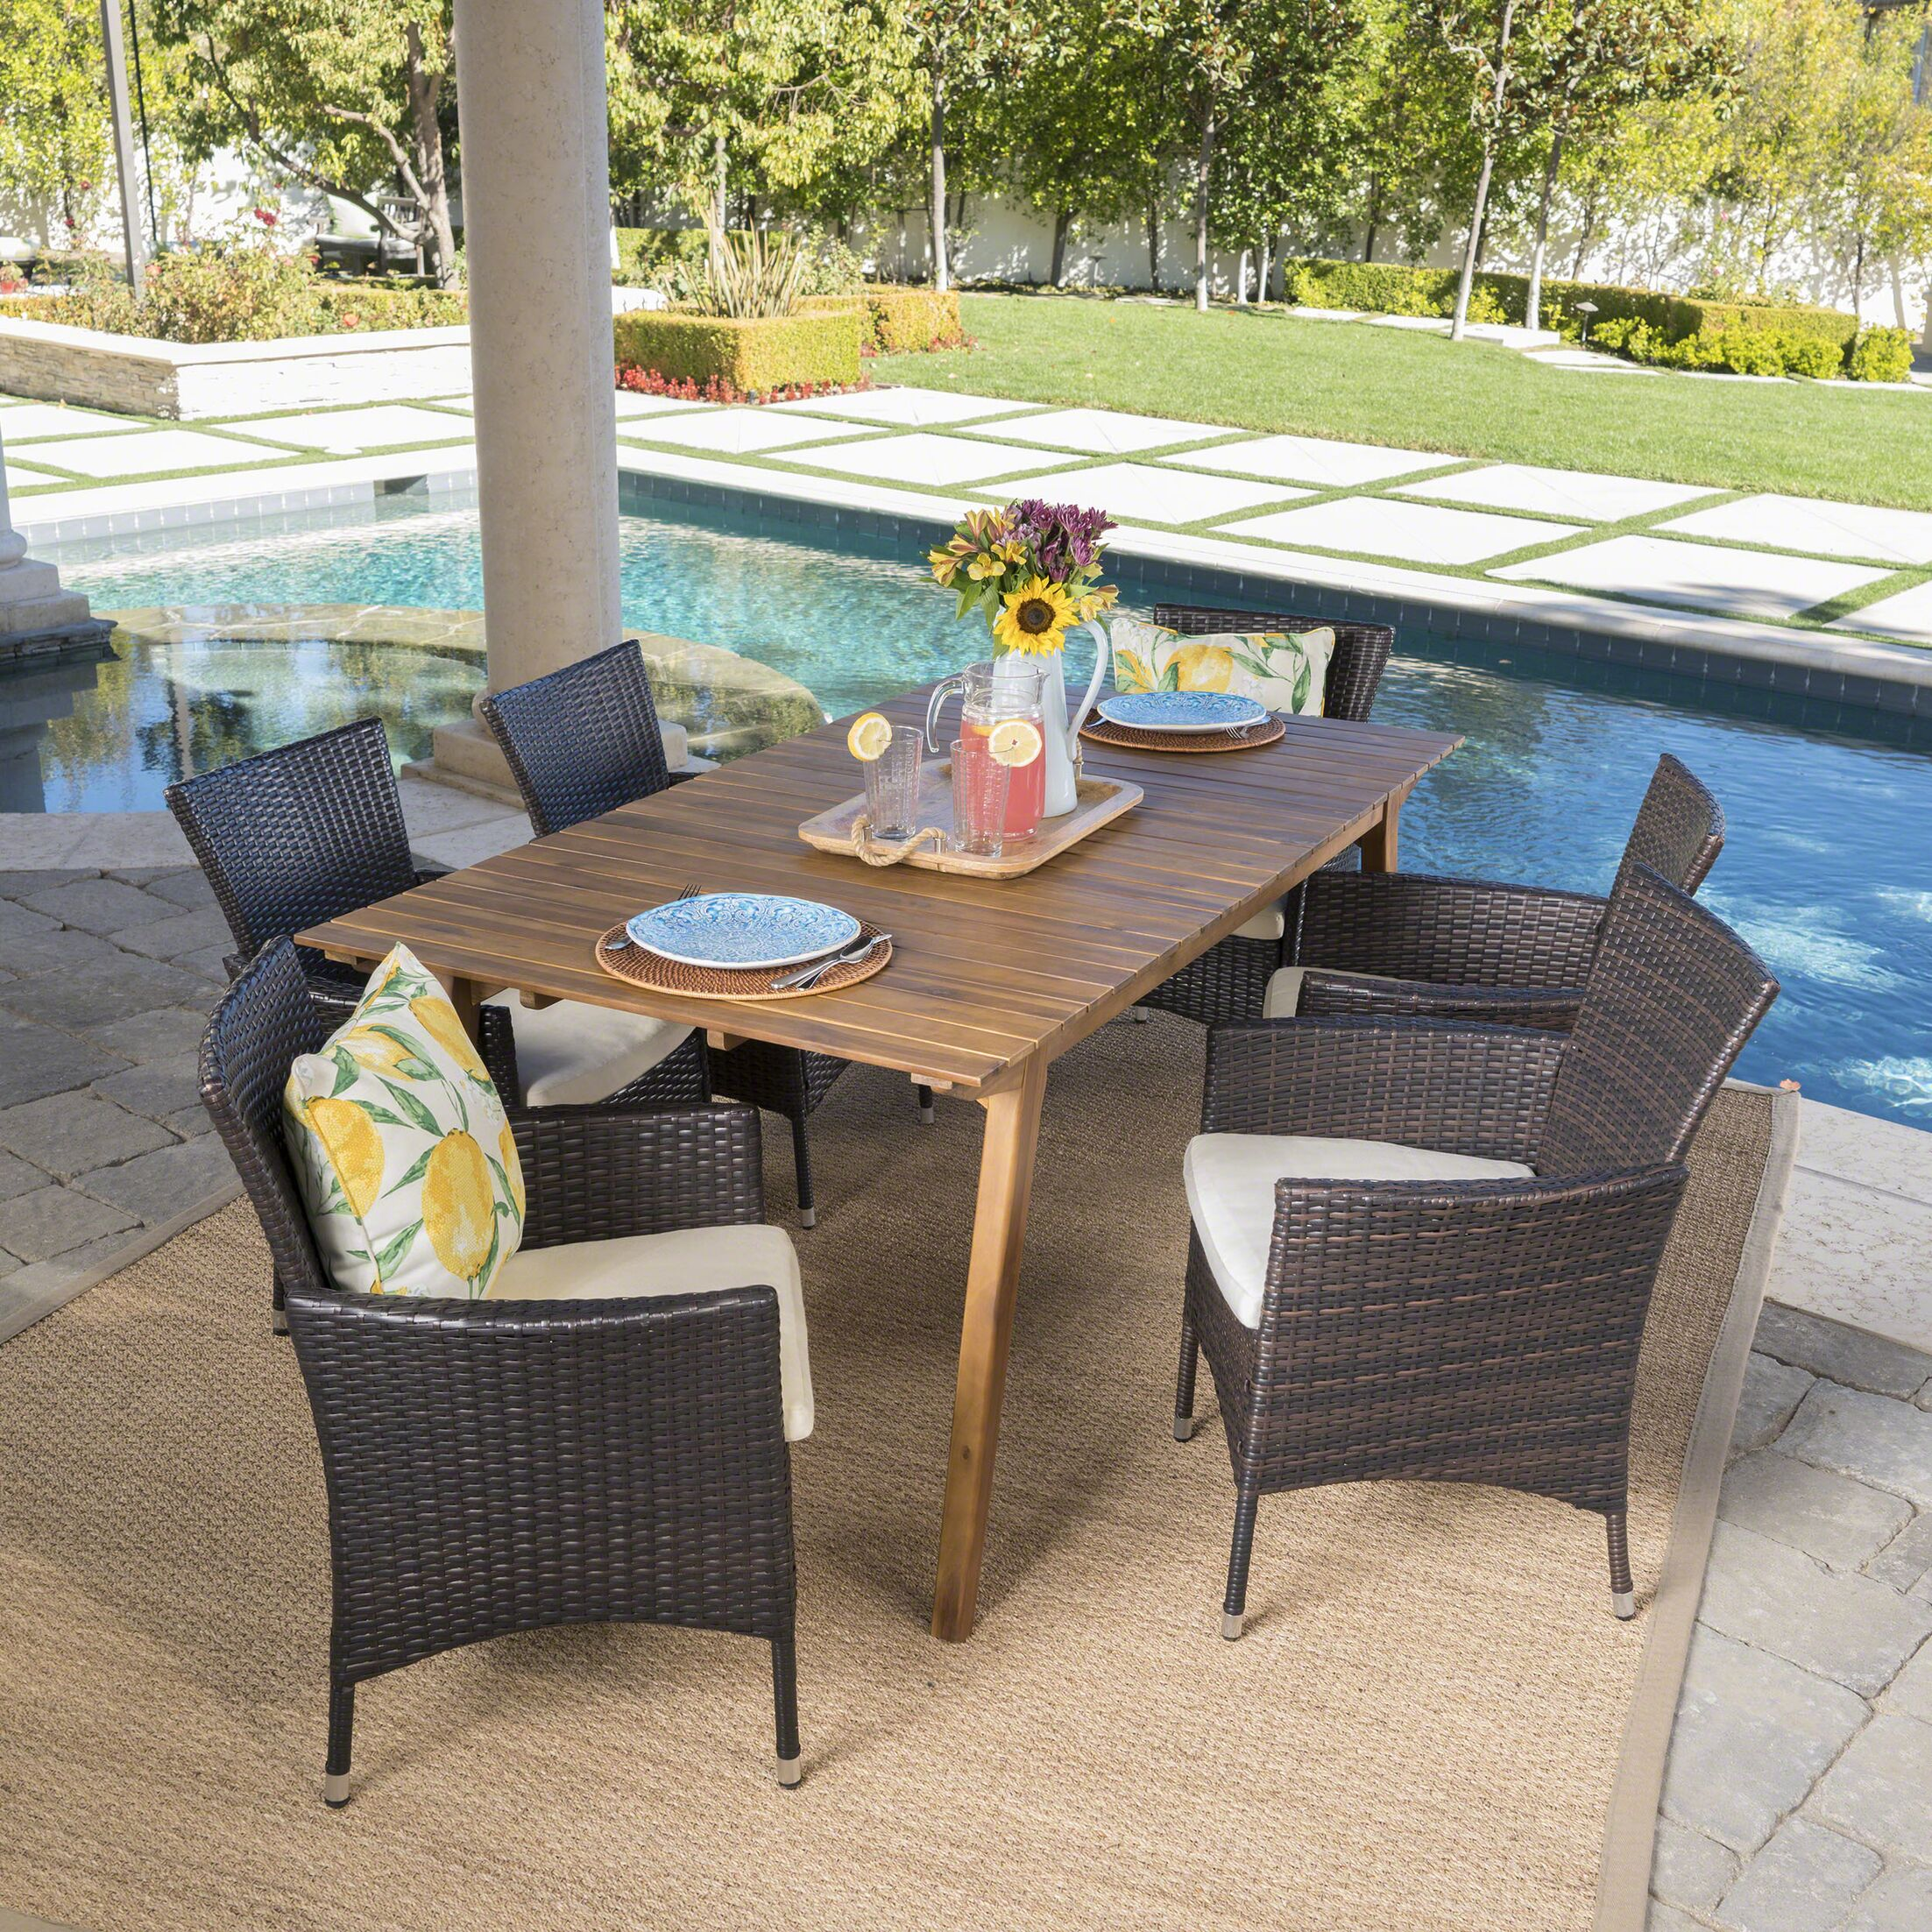 Manno Outdoor 7 Piece Dining Set with Cushions